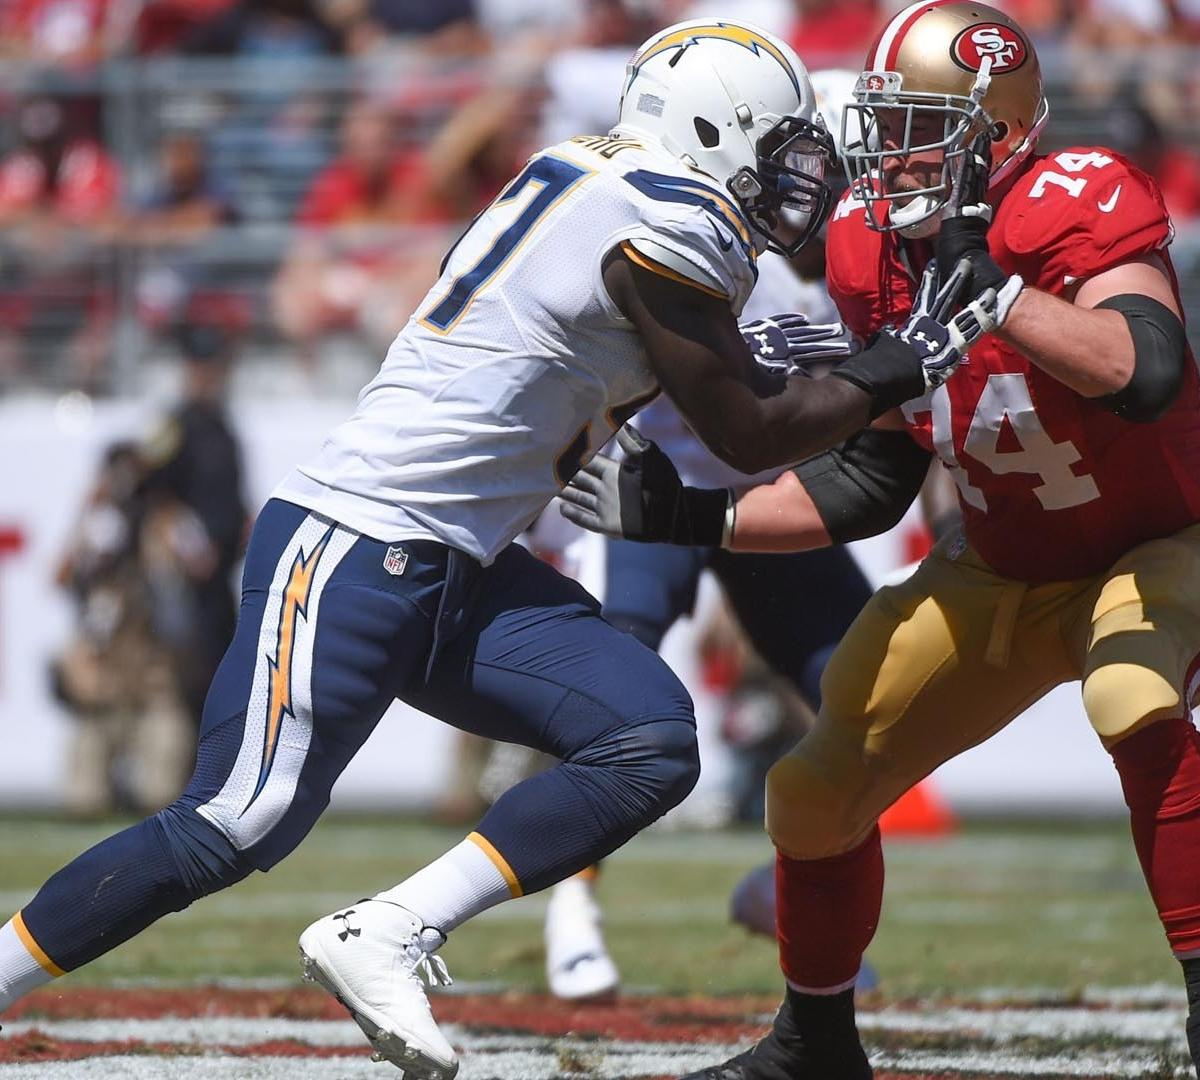 San Diego Chargers Bleacher Report: Predicting San Diego Chargers' 2015 Breakout Stars